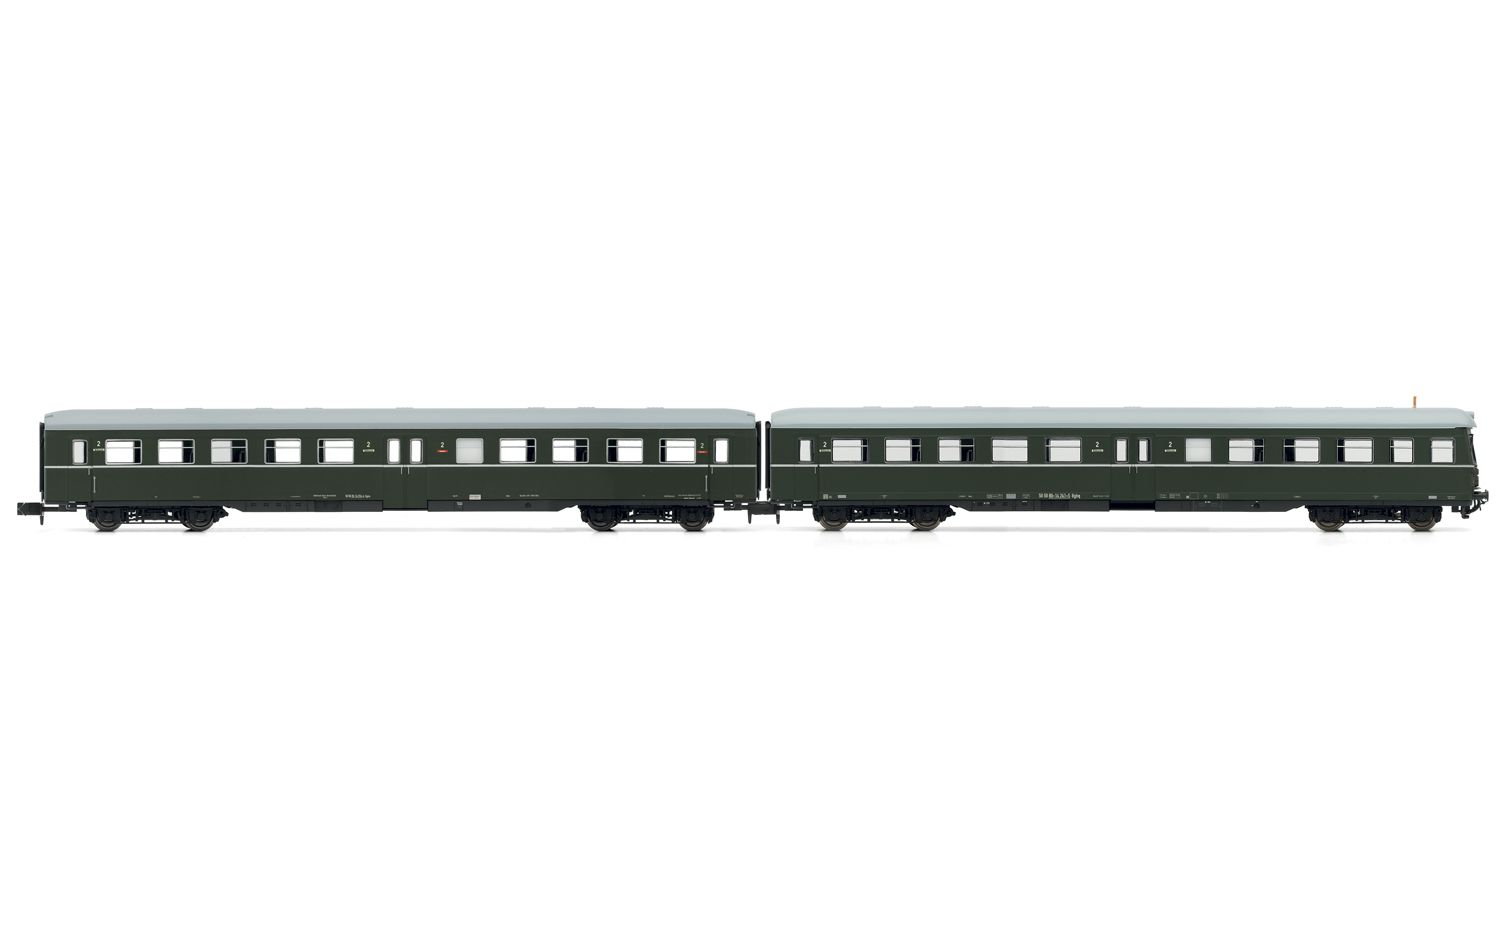 Picture Gallery for Arnold HN4183 2-unit set coaches (1 with drivers c